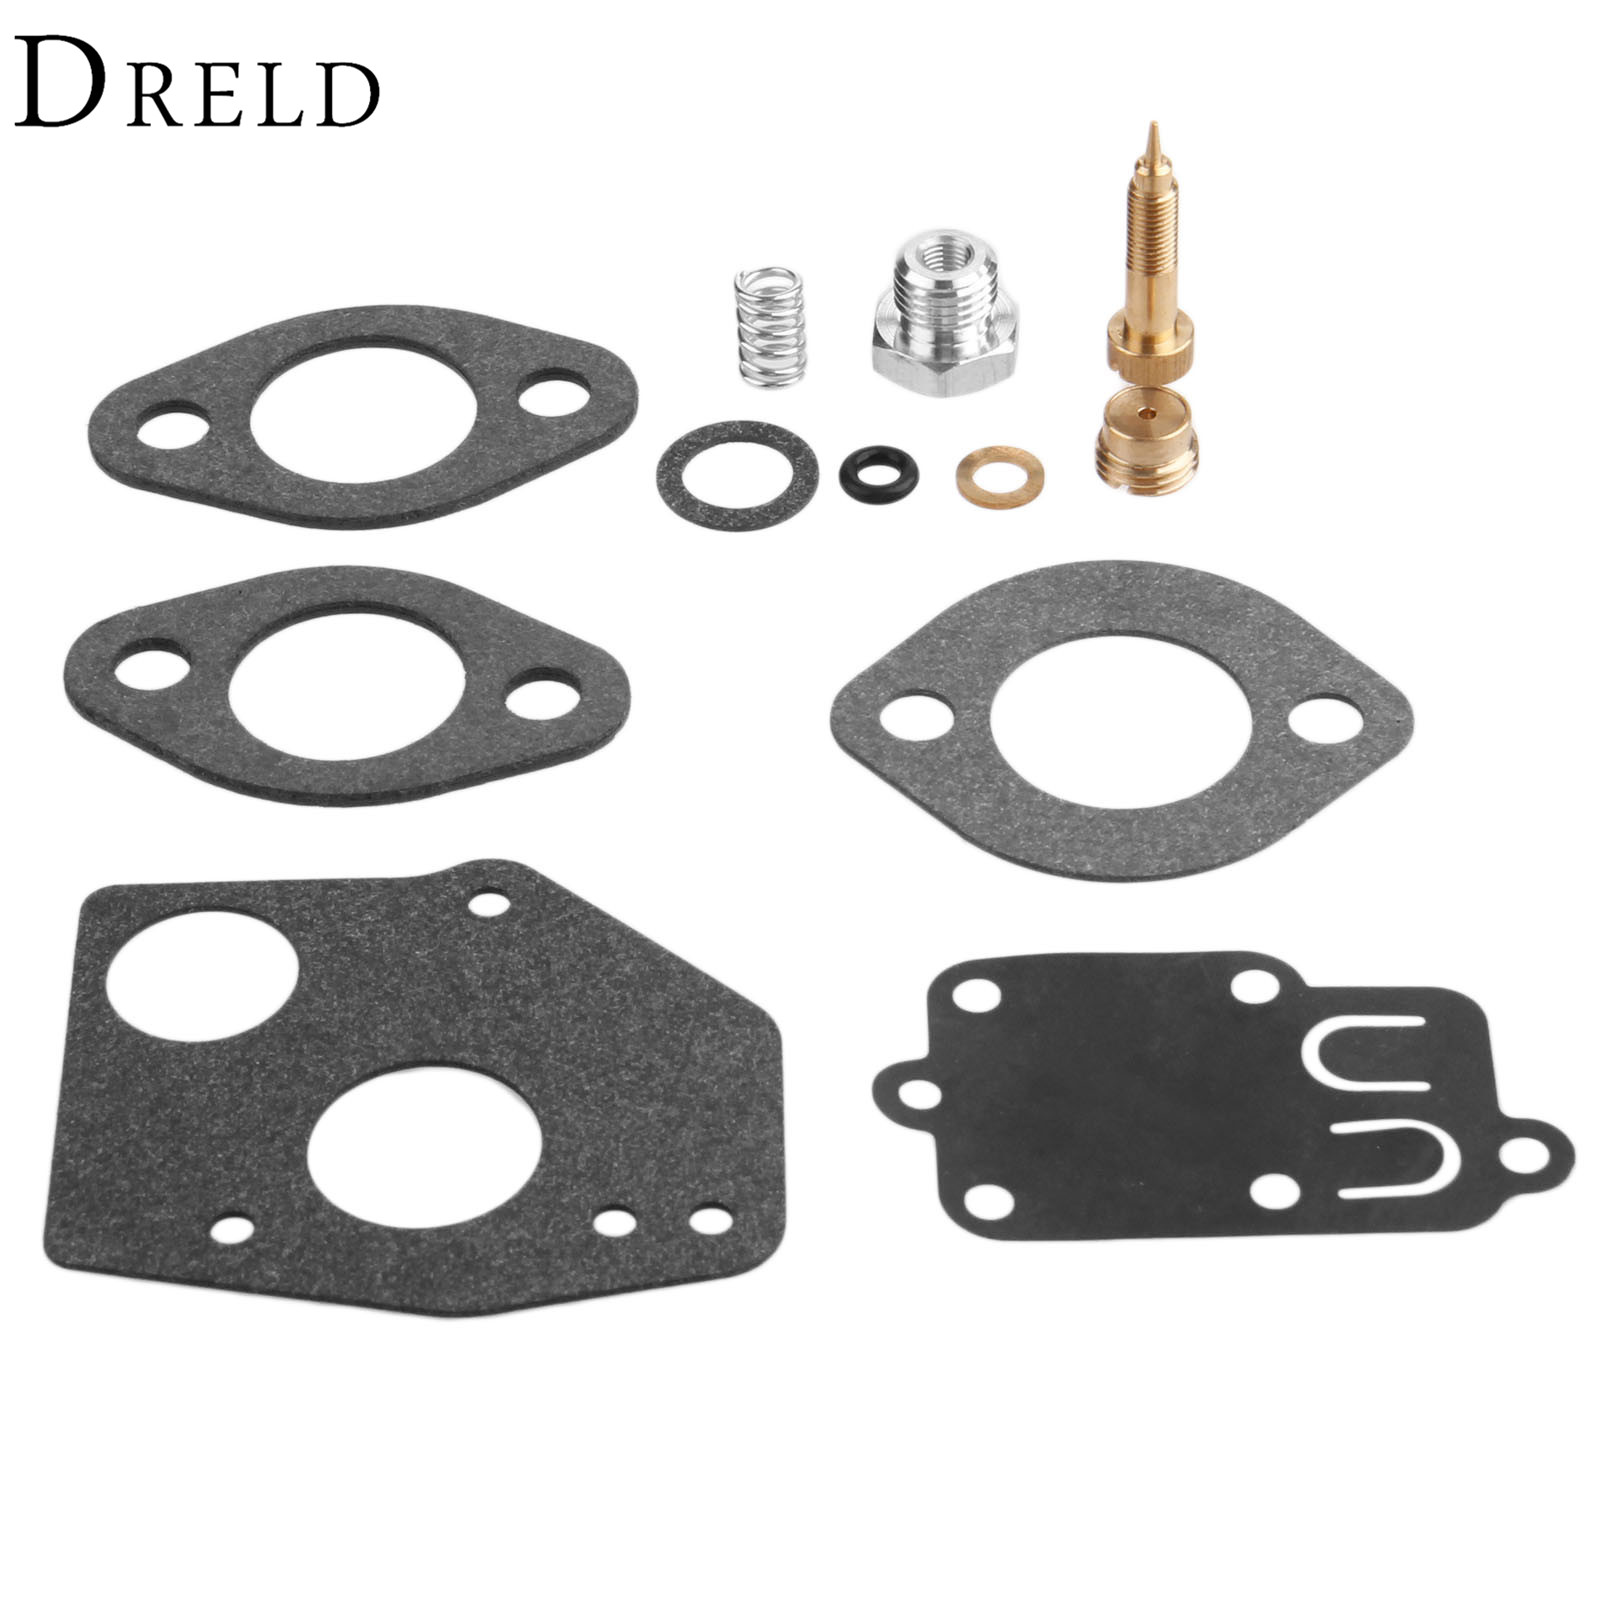 DRELD Carburetor Carb Repair Overhaul Kit for BRIGGS & STRATTON 80200 81200 82200 133200 135200 92200 93200 136200 100200 111200